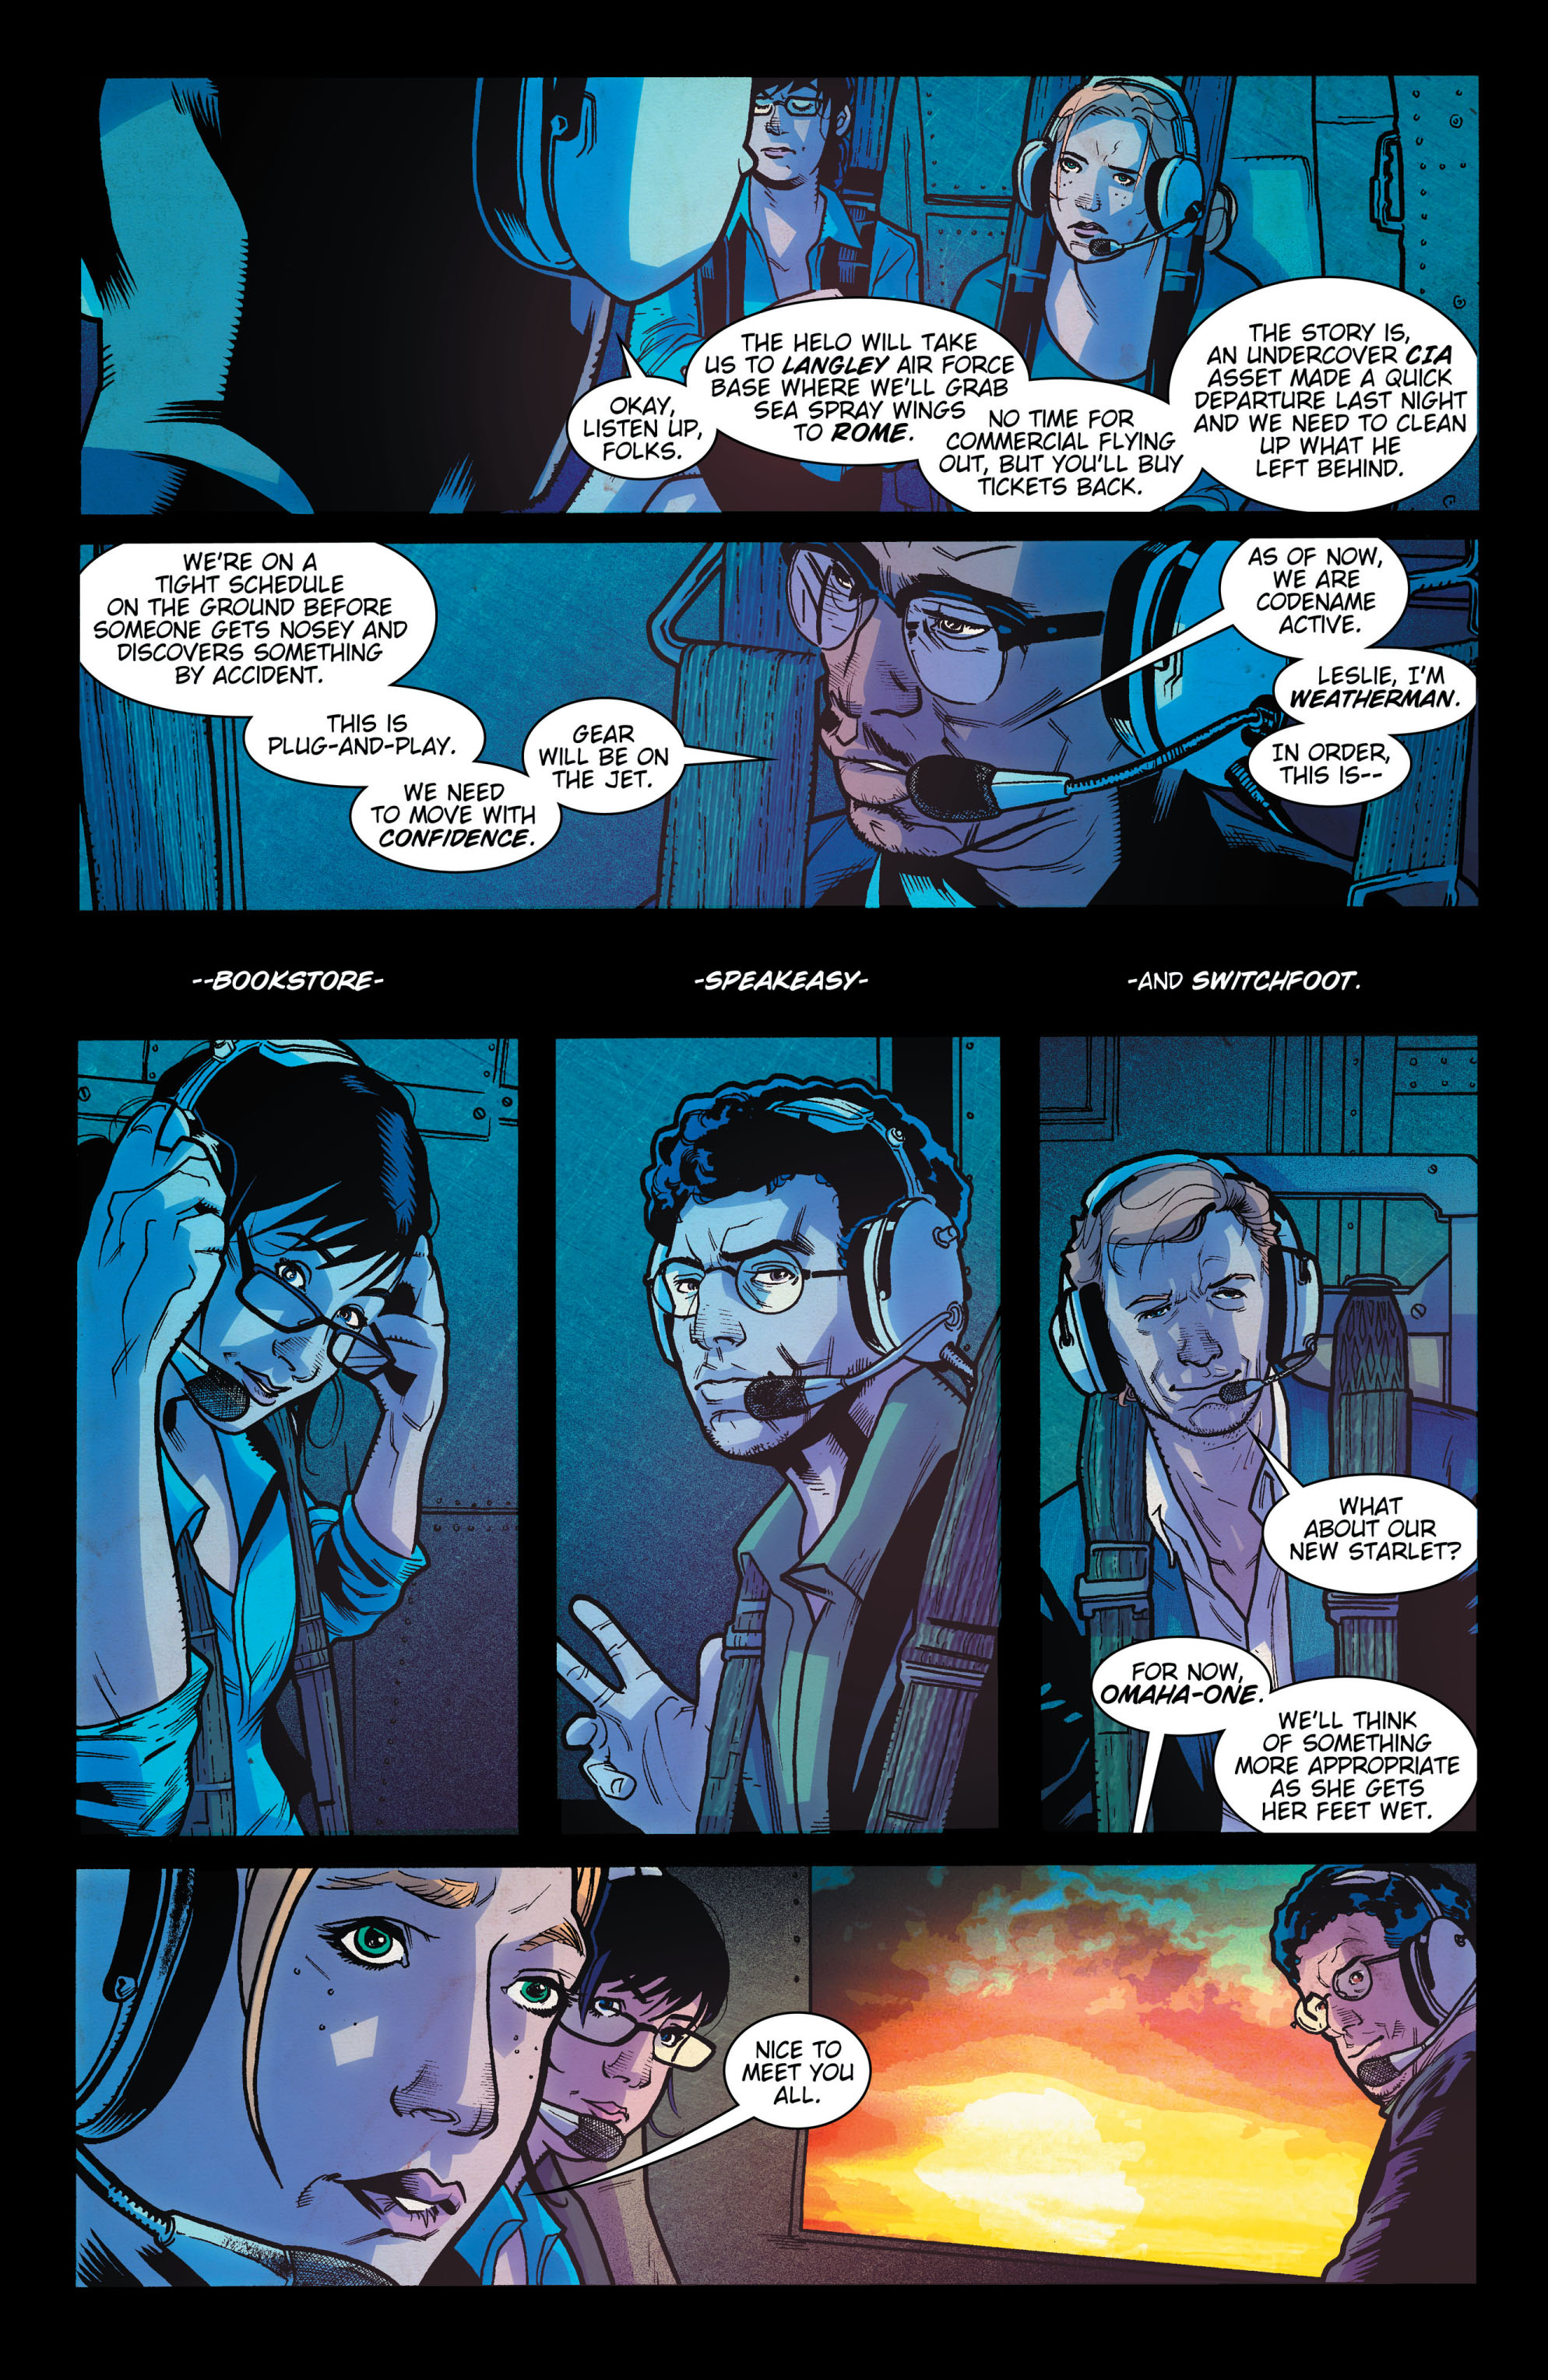 Read online The Activity comic -  Issue #1 - 13